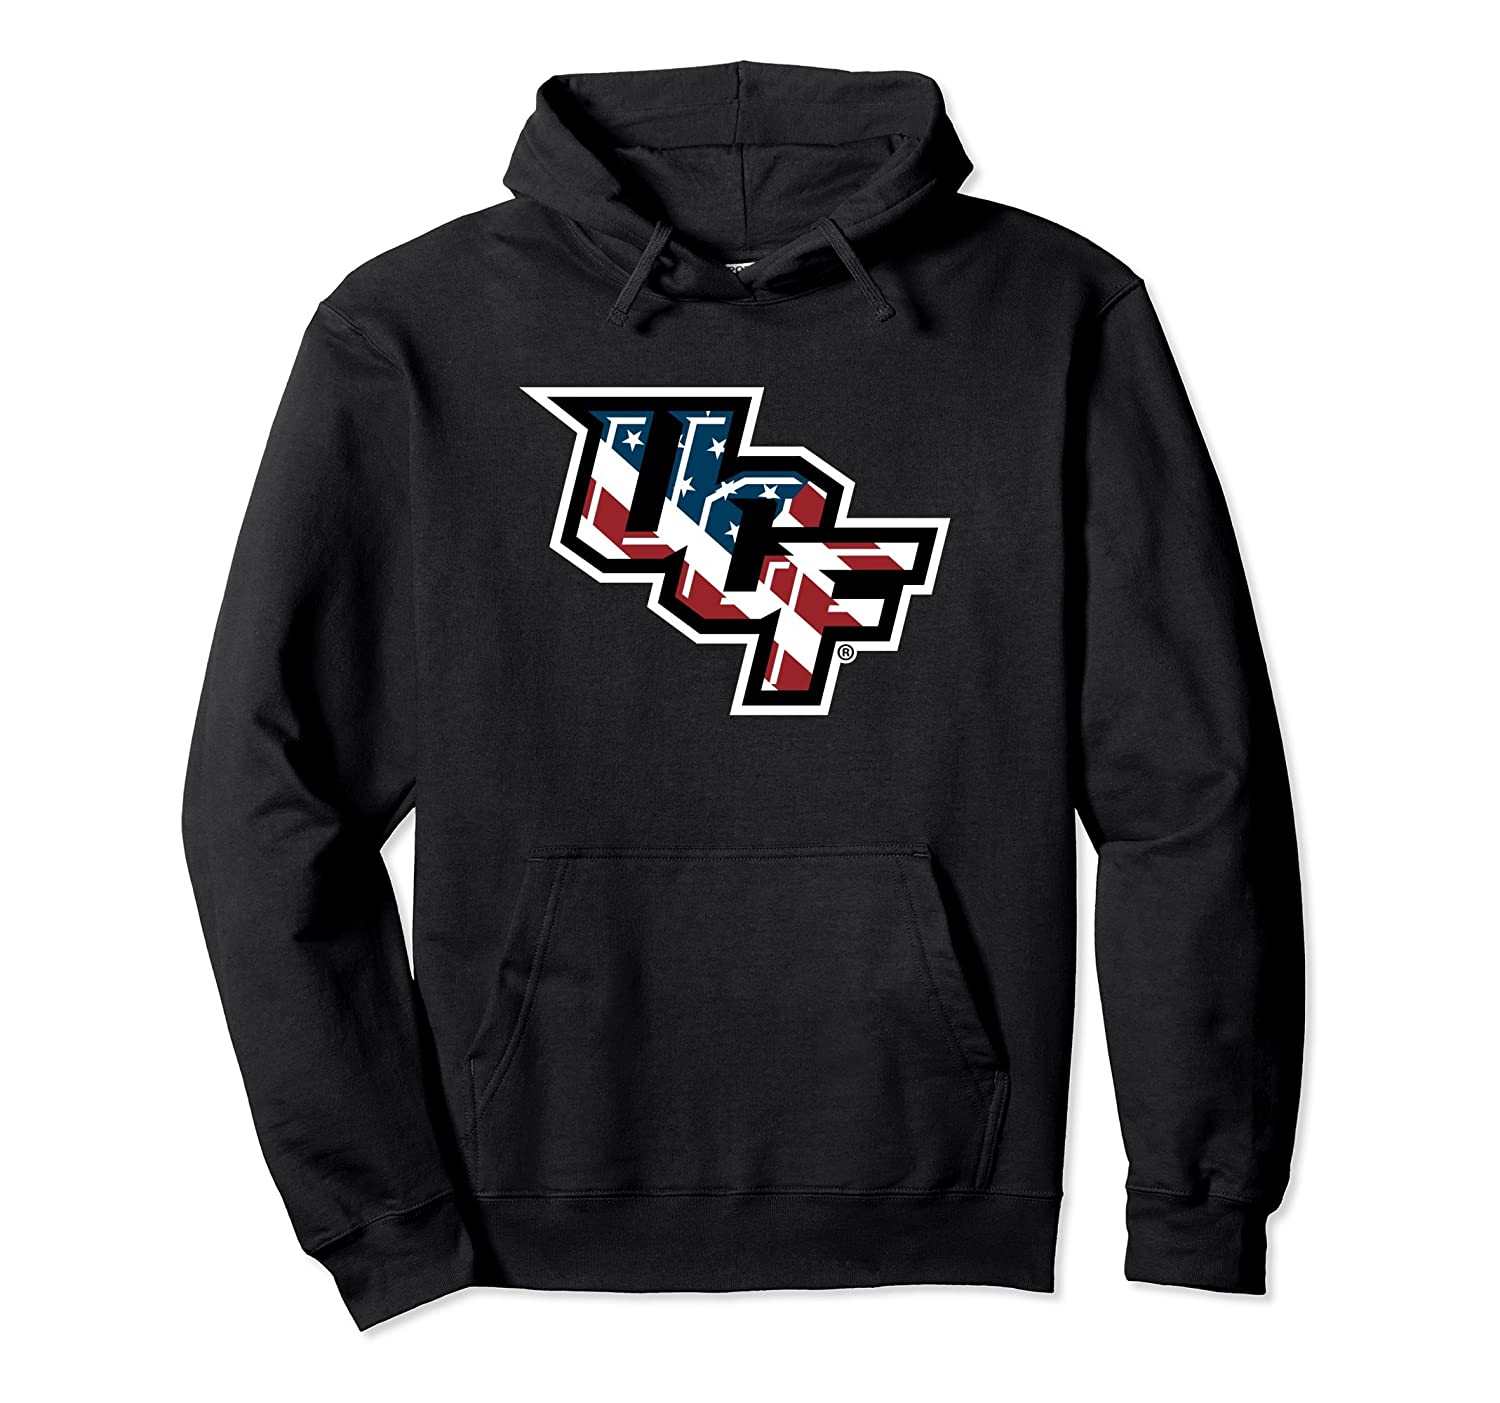 University of Central Florida UCF NCAA Cozy Hoodie PPCF19-Colonhue